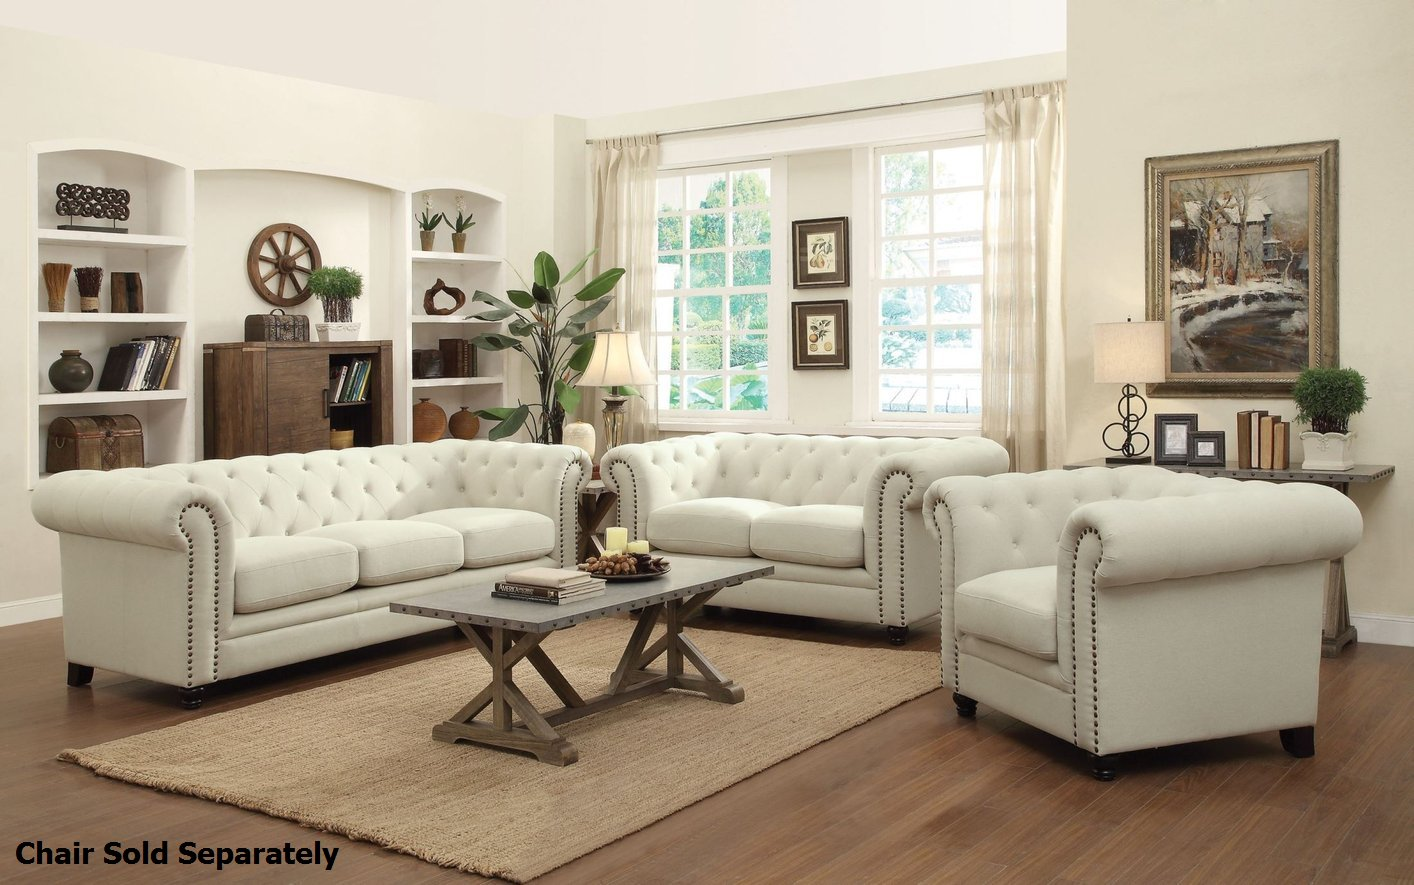 Install sofa and loveseat set to make your living room elegant